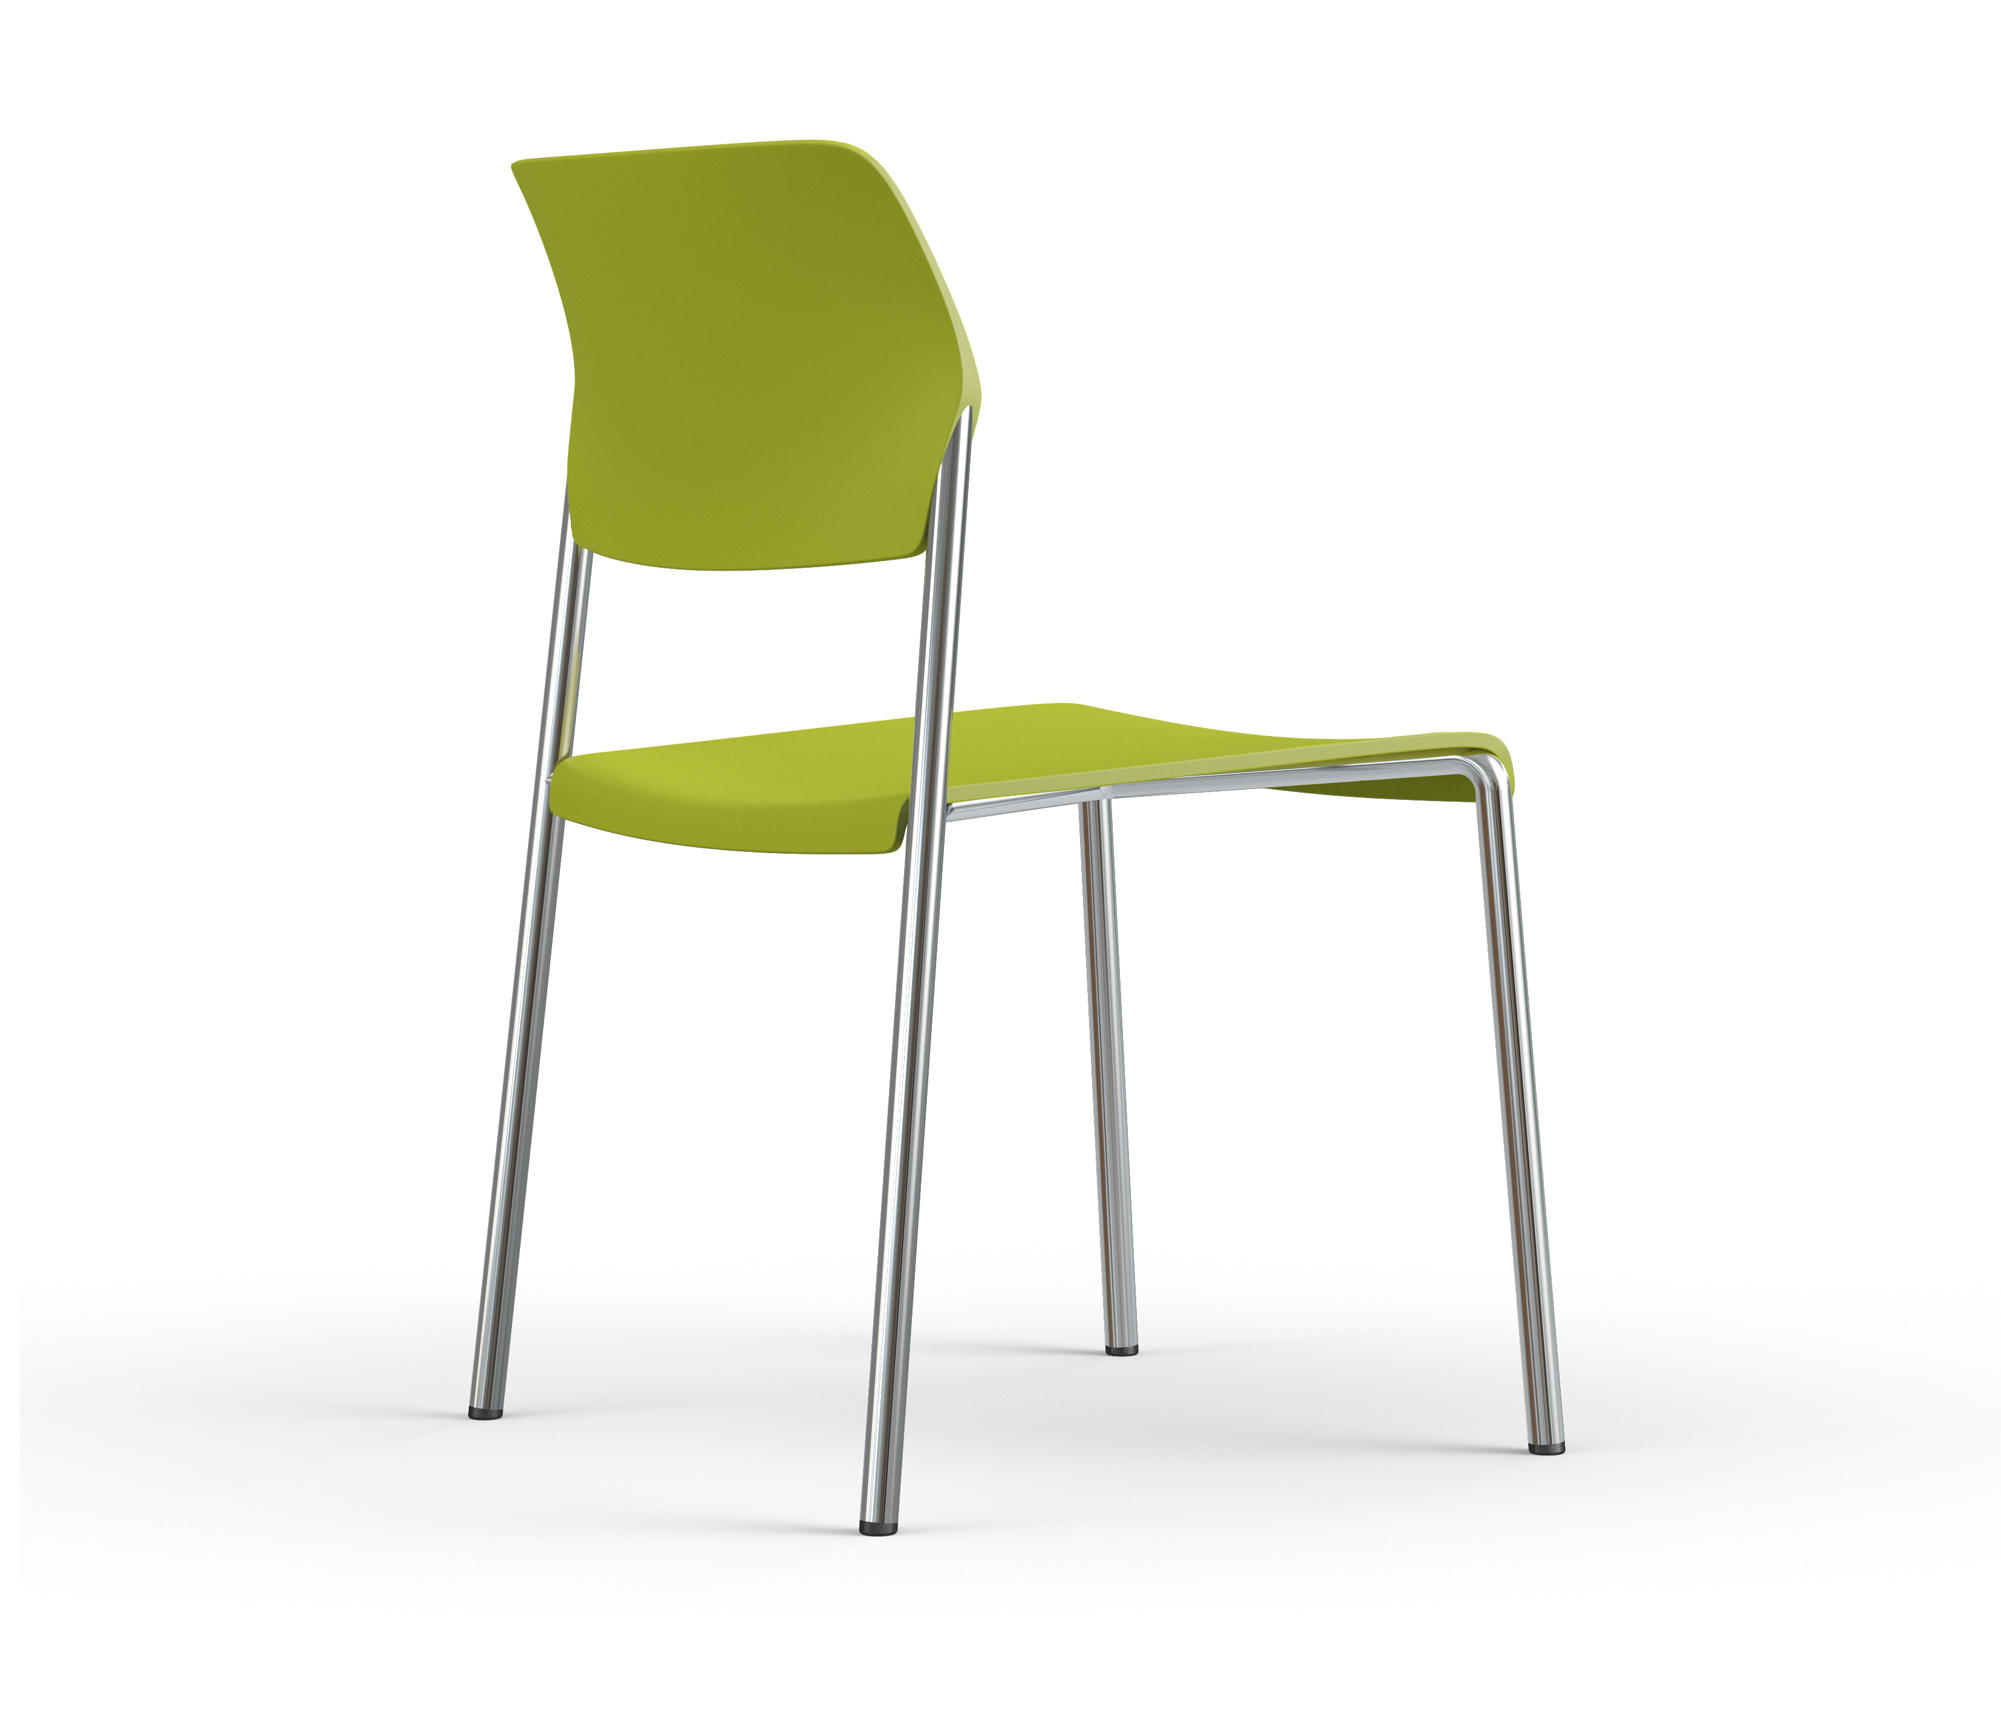 Magma 4006 By Brunner | Multipurpose Chairs